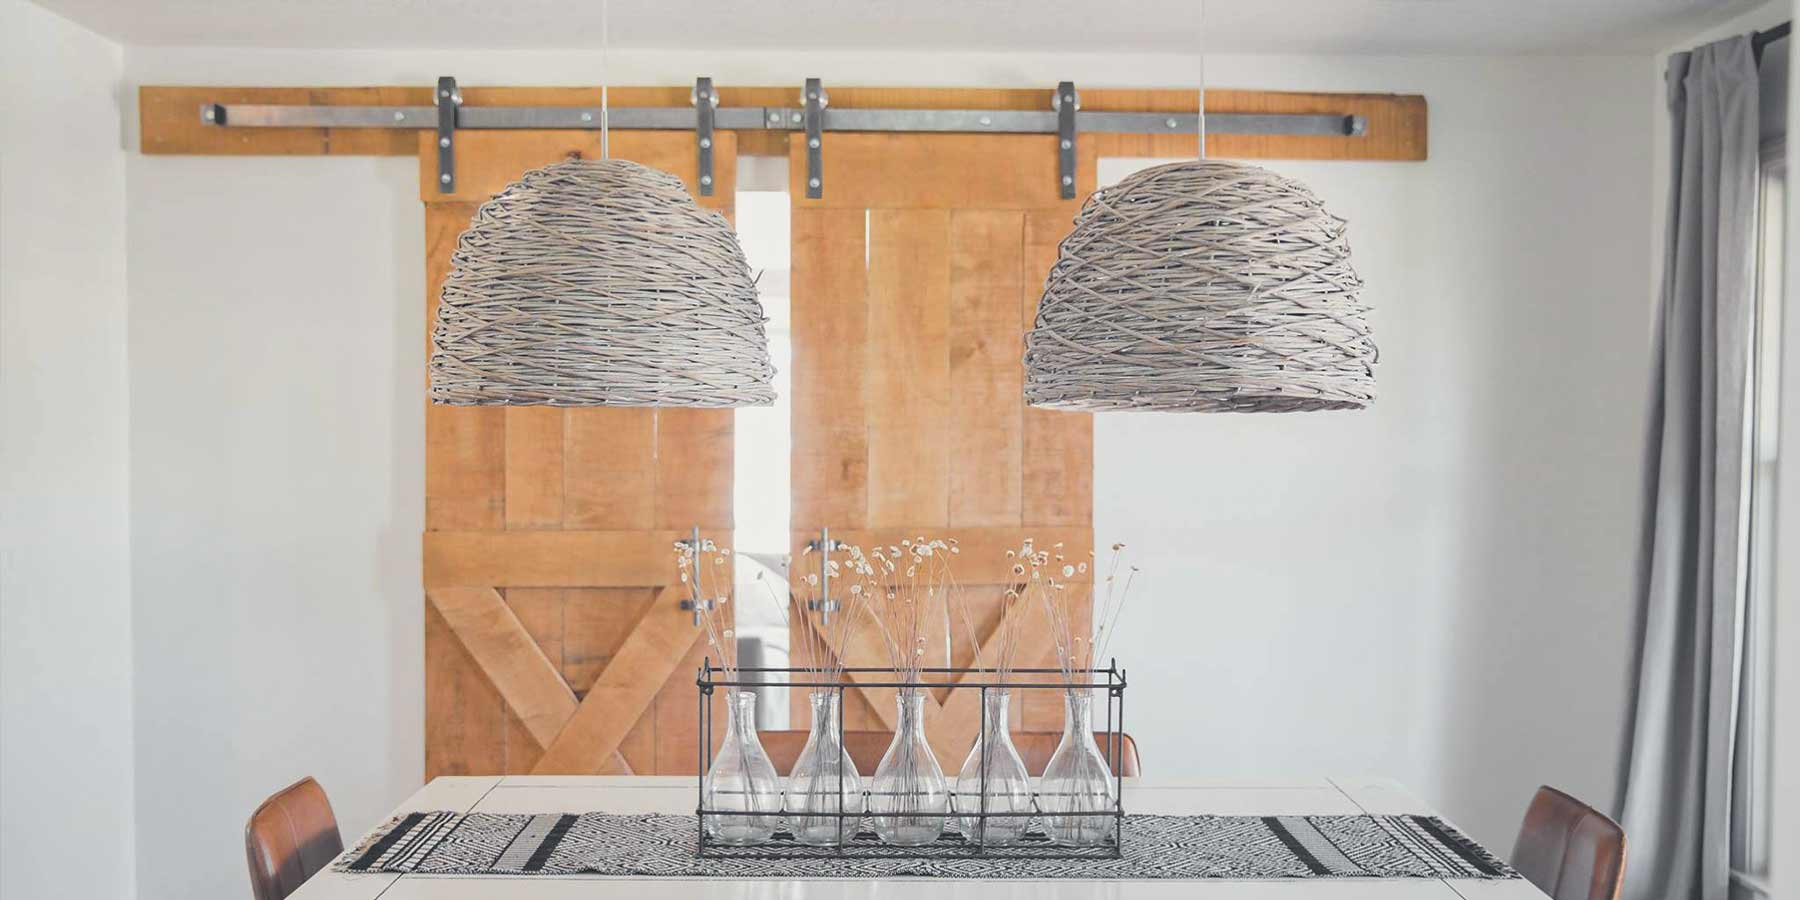 Boho Décor Ideas by RealCraft: Dining Room featuring RealCraft's hammered hardware